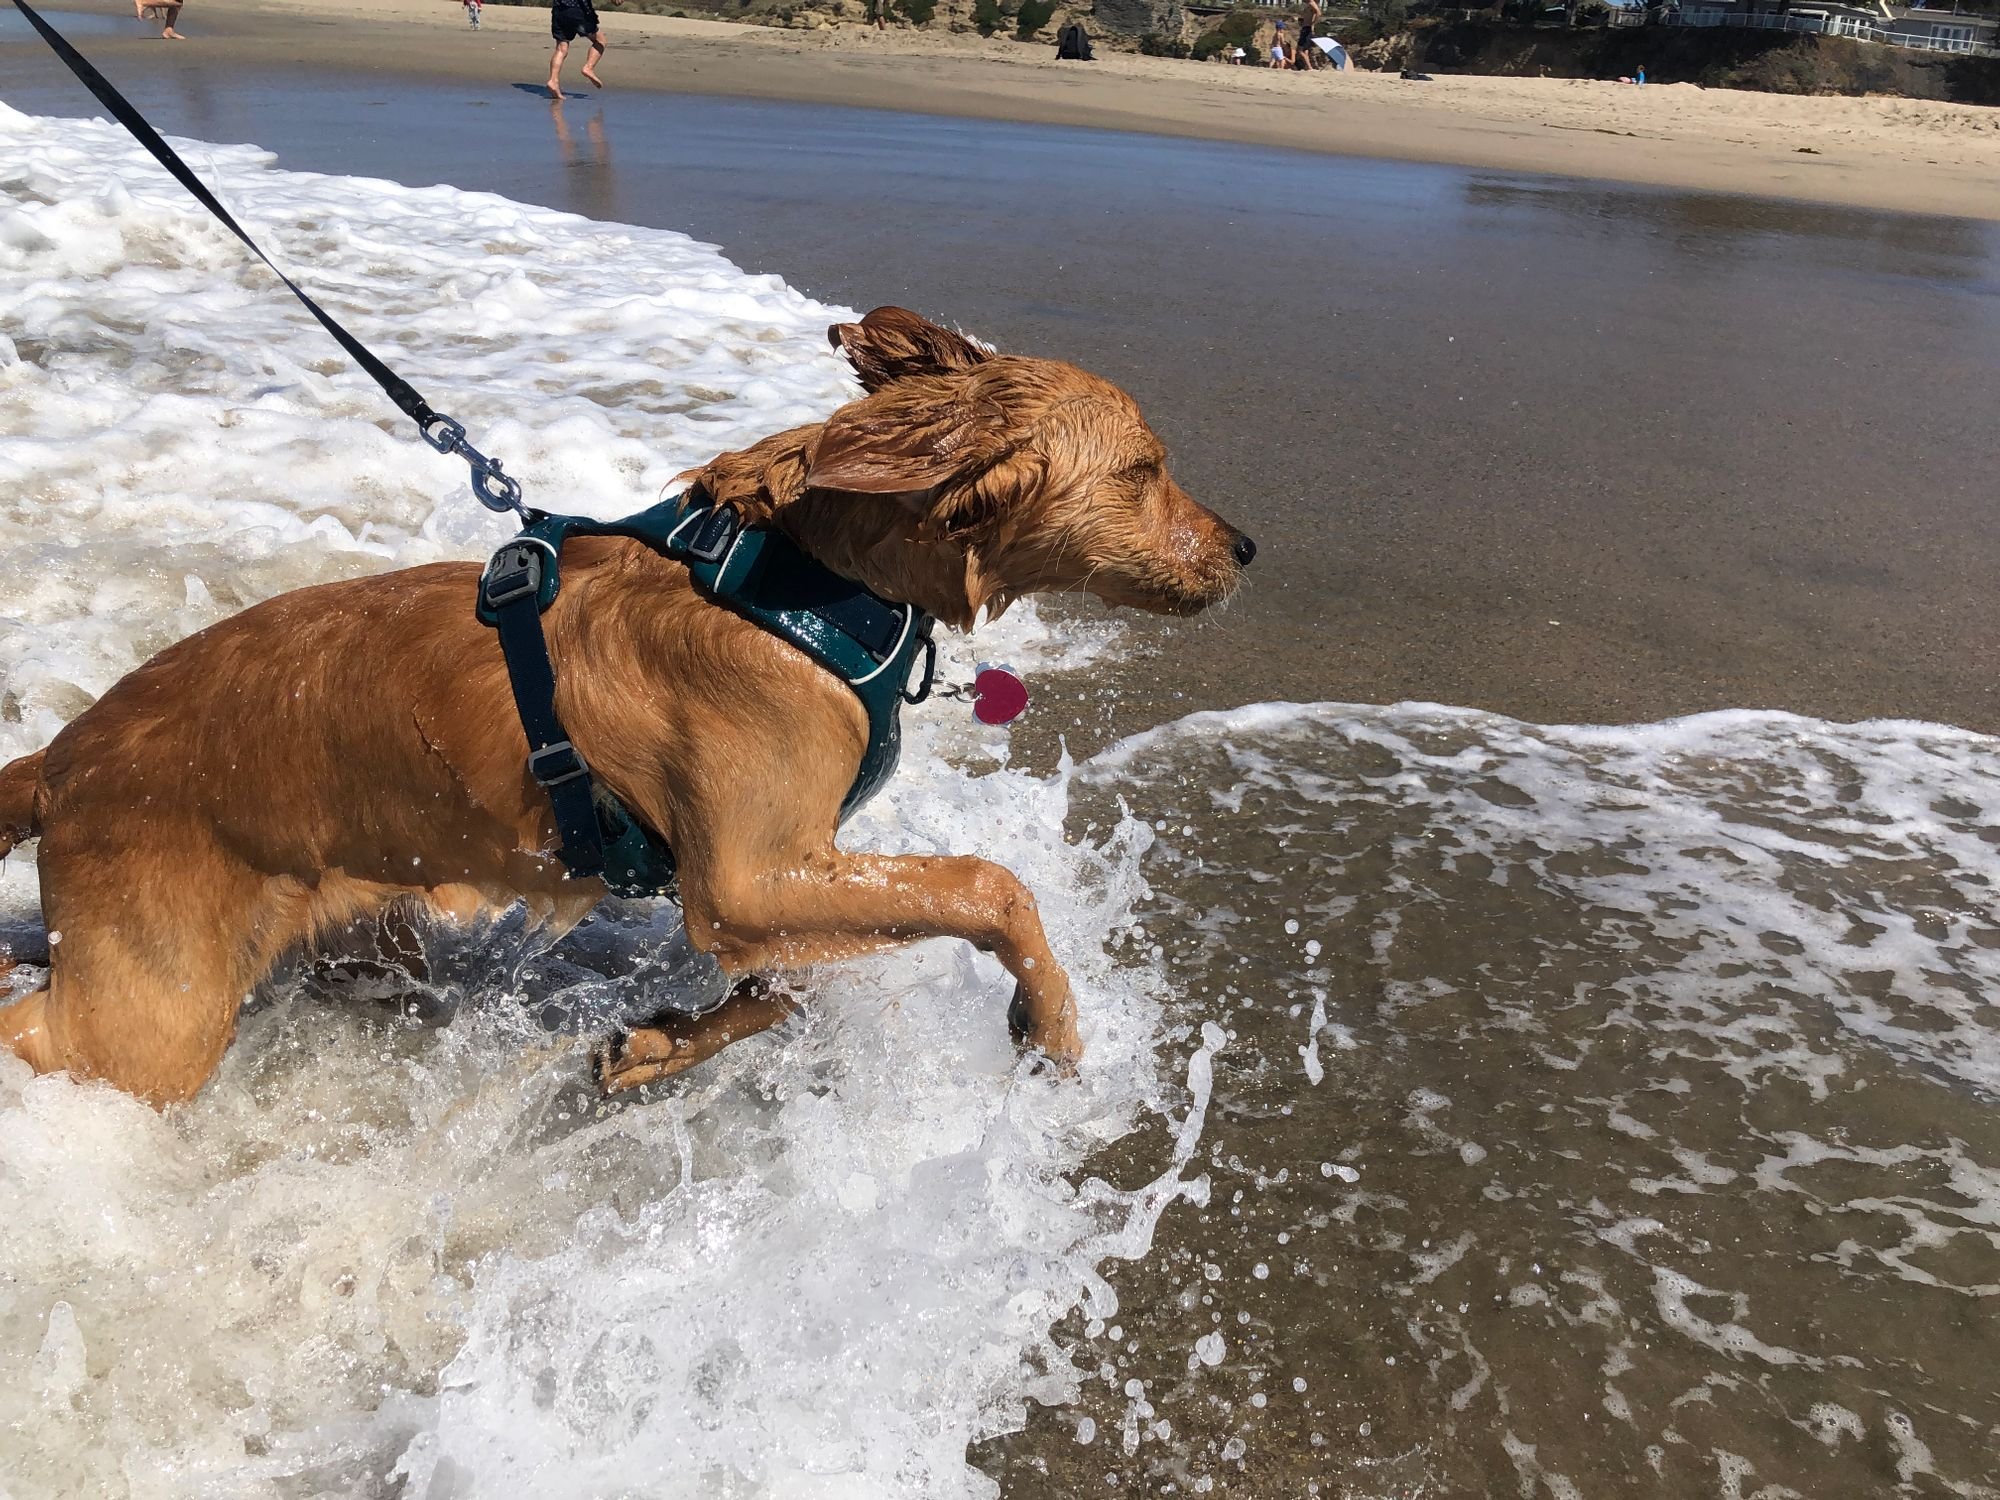 Adventure Day at the Beach